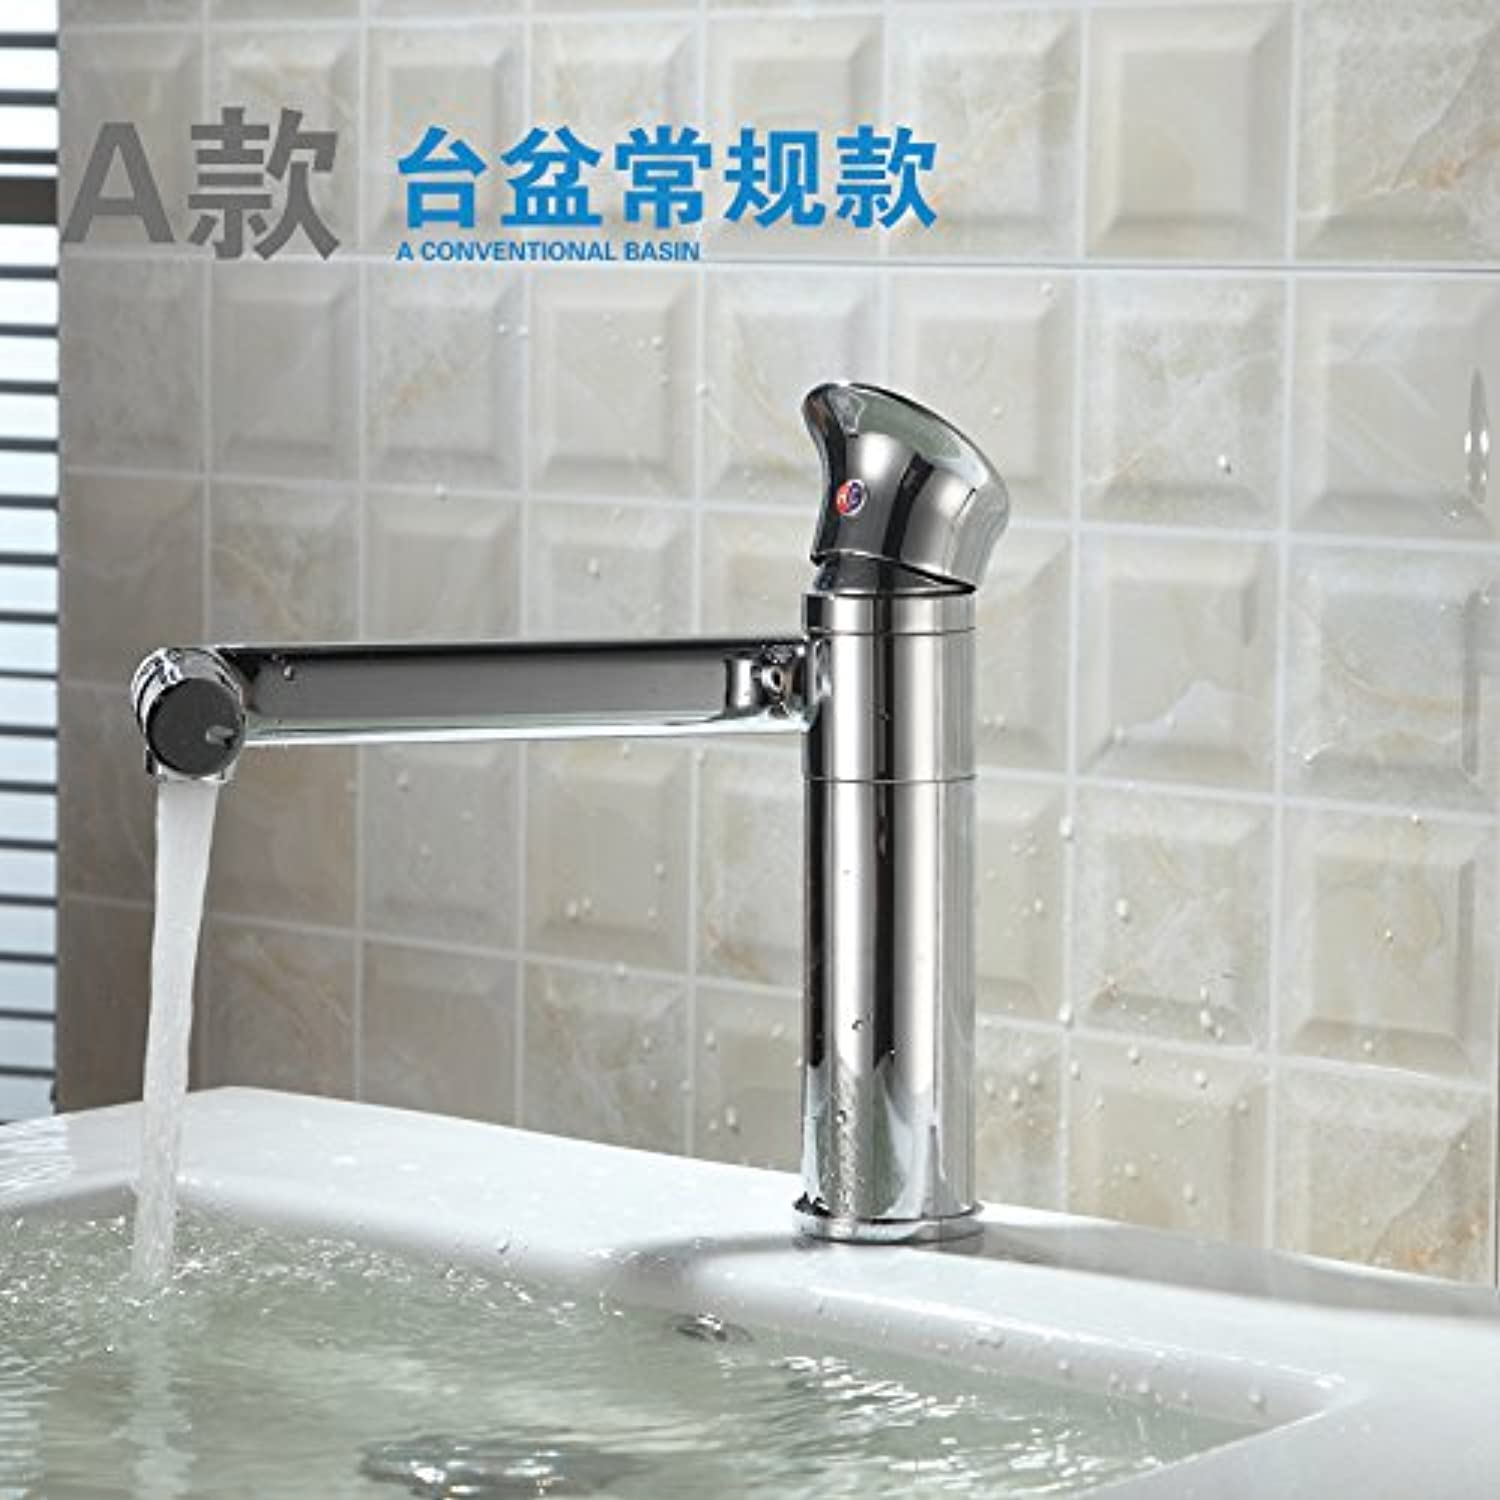 LHbox Basin Mixer Tap Bathroom Sink Faucet The brass faucets, 360 degree redation, Single Hole basin faucet, hot and cold, stand the pots,